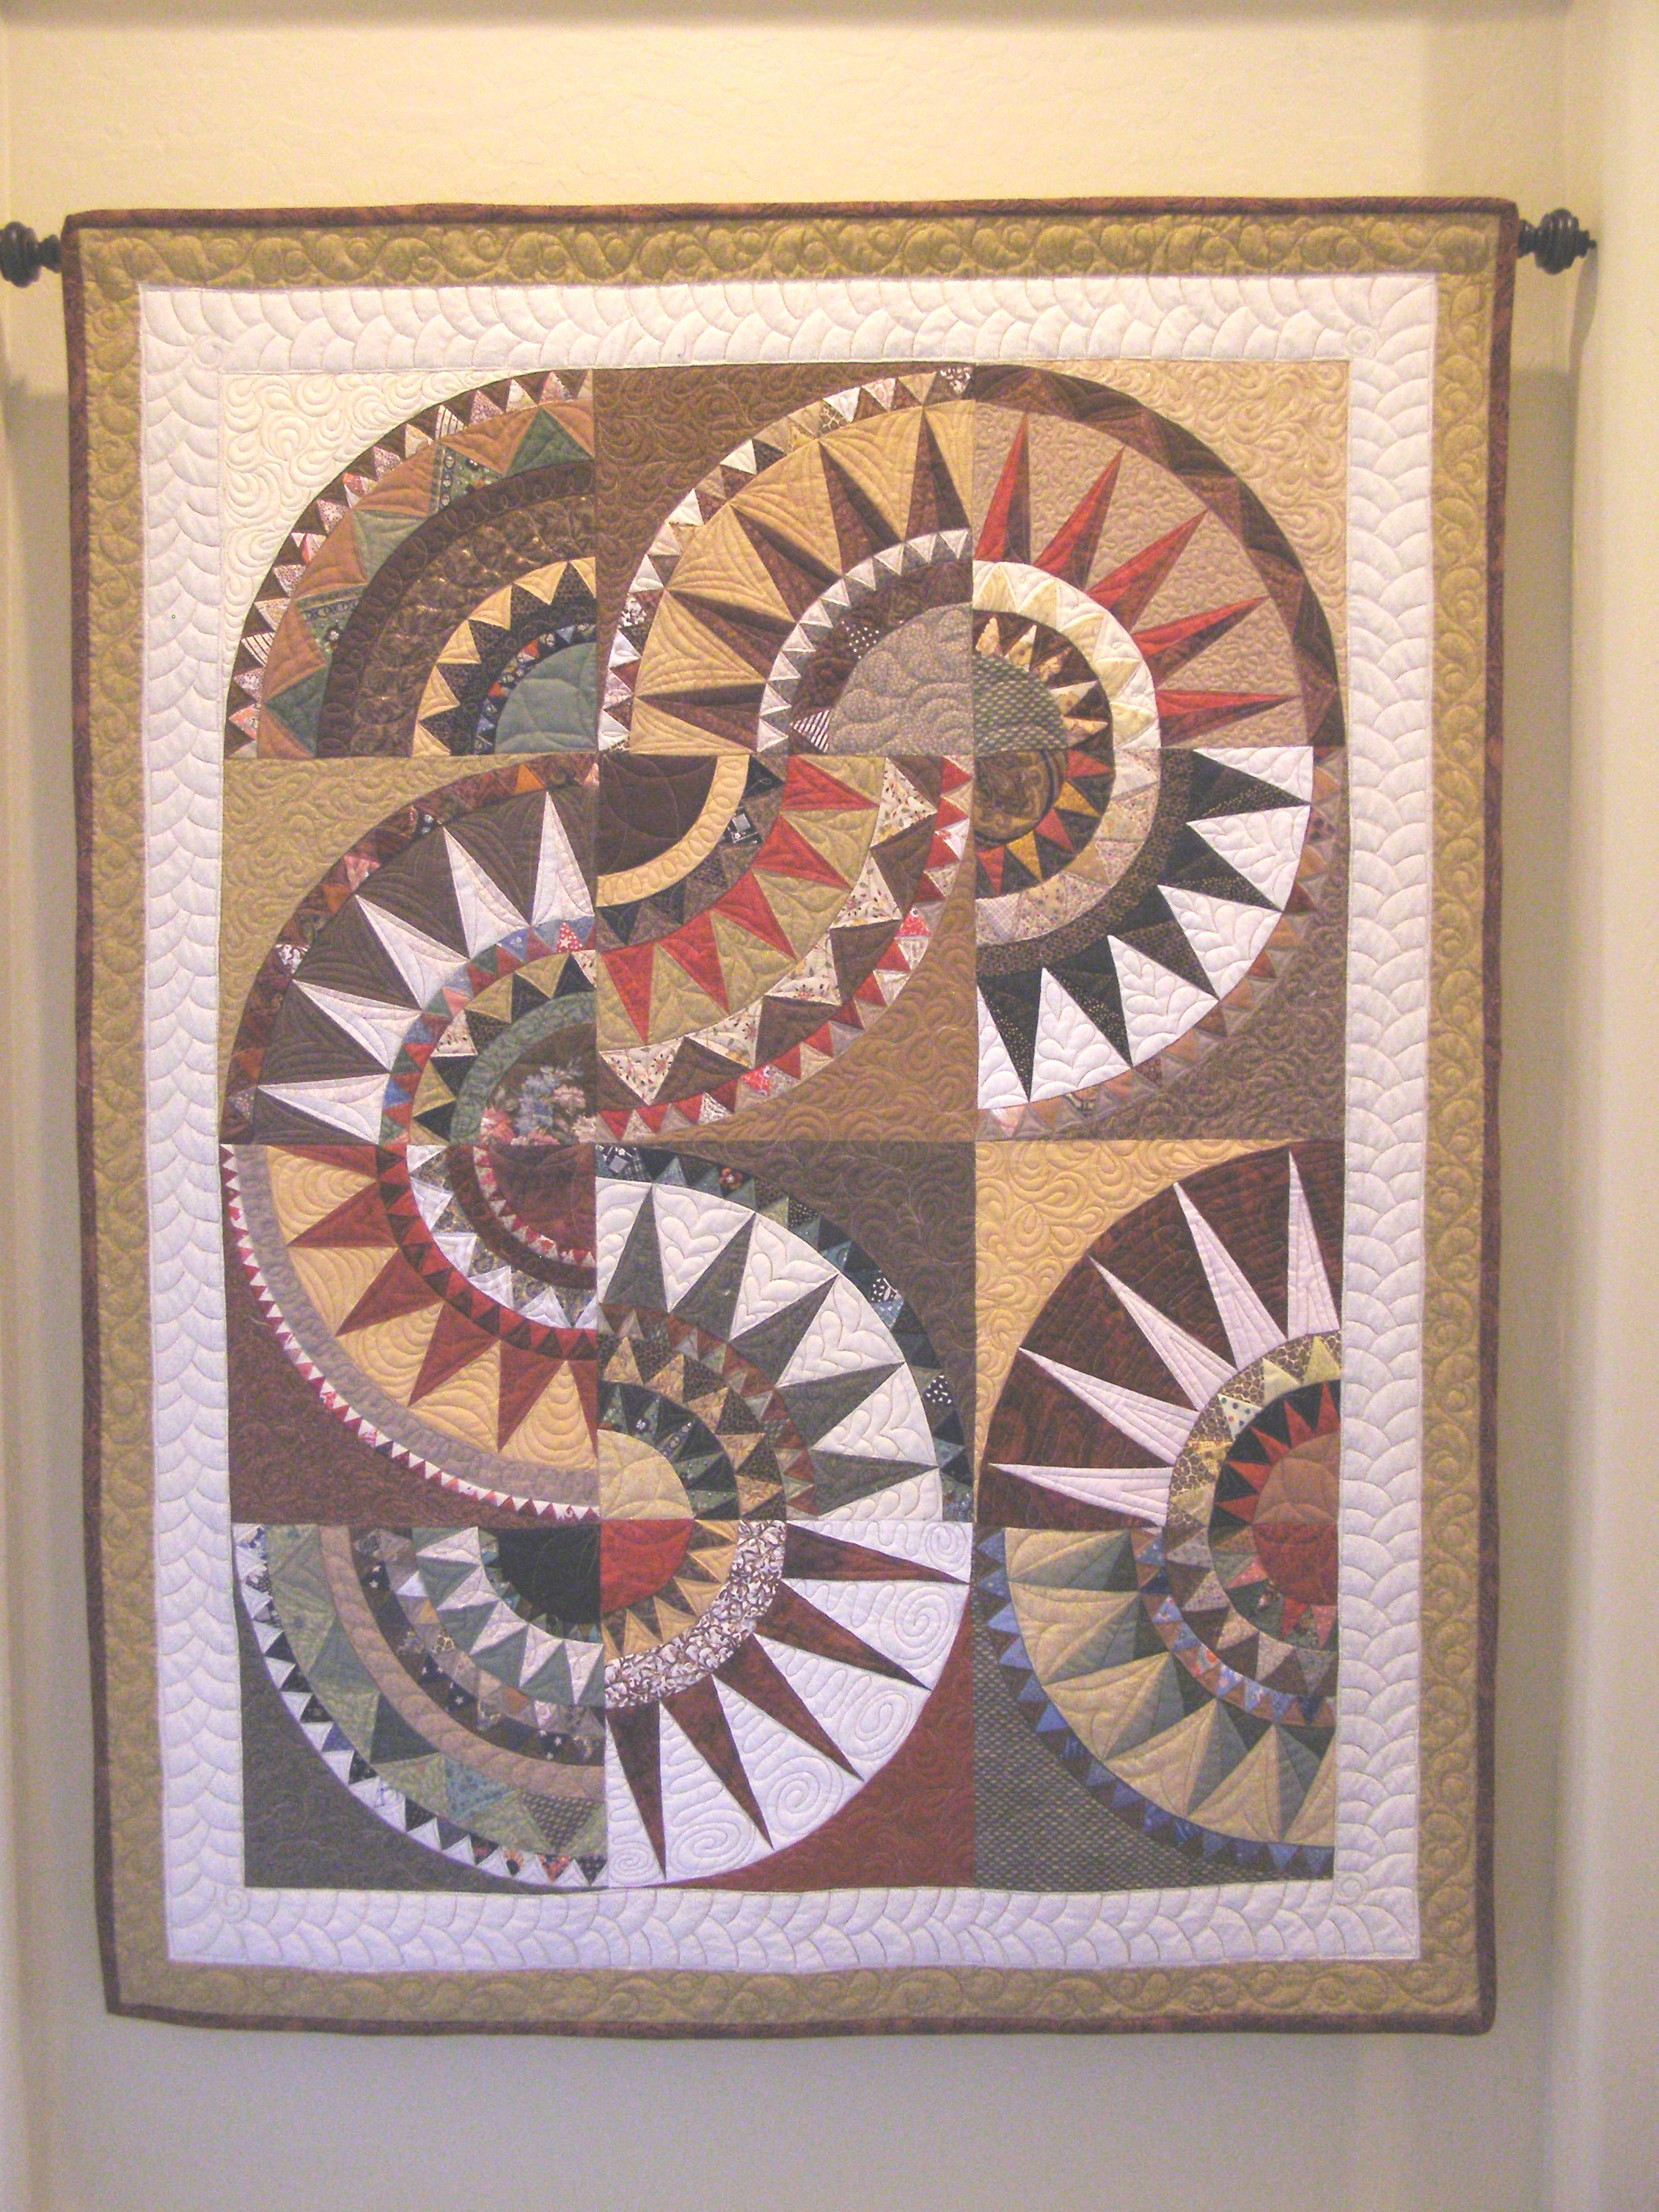 More On The 3 Generation New York Beauty Quilt The